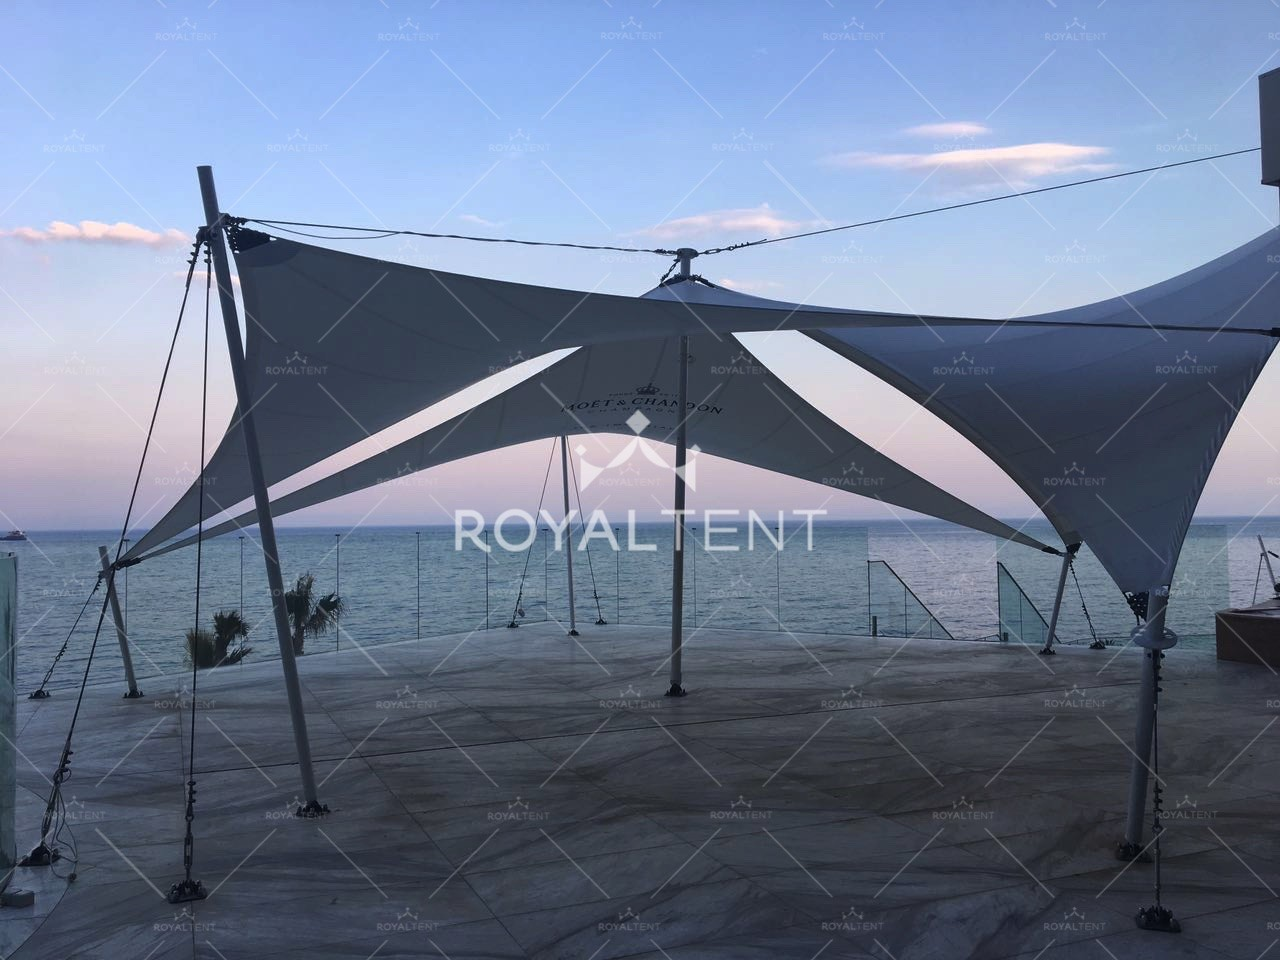 https://royaltent.me/houses_images/tent3_2_200116081114.jpg